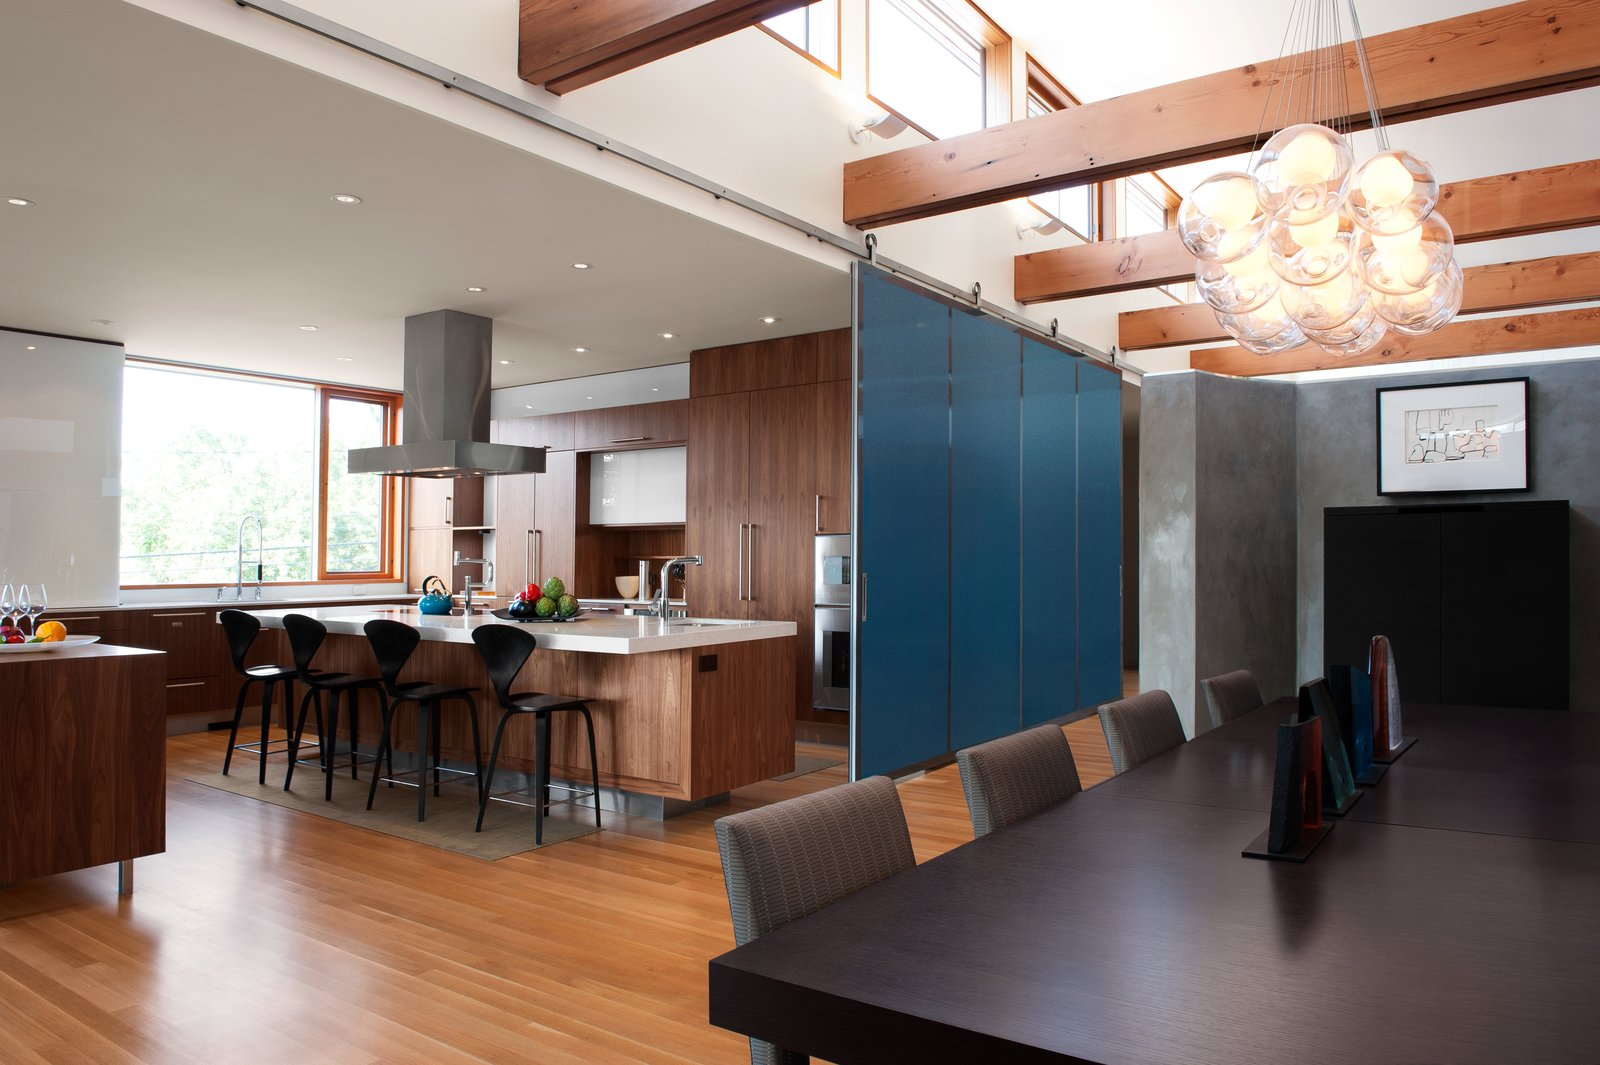 DECA Architecture designed a moveable wall to create a guest area when closed, and join the space with the kitchen and dining room when open.  The CYRK Building